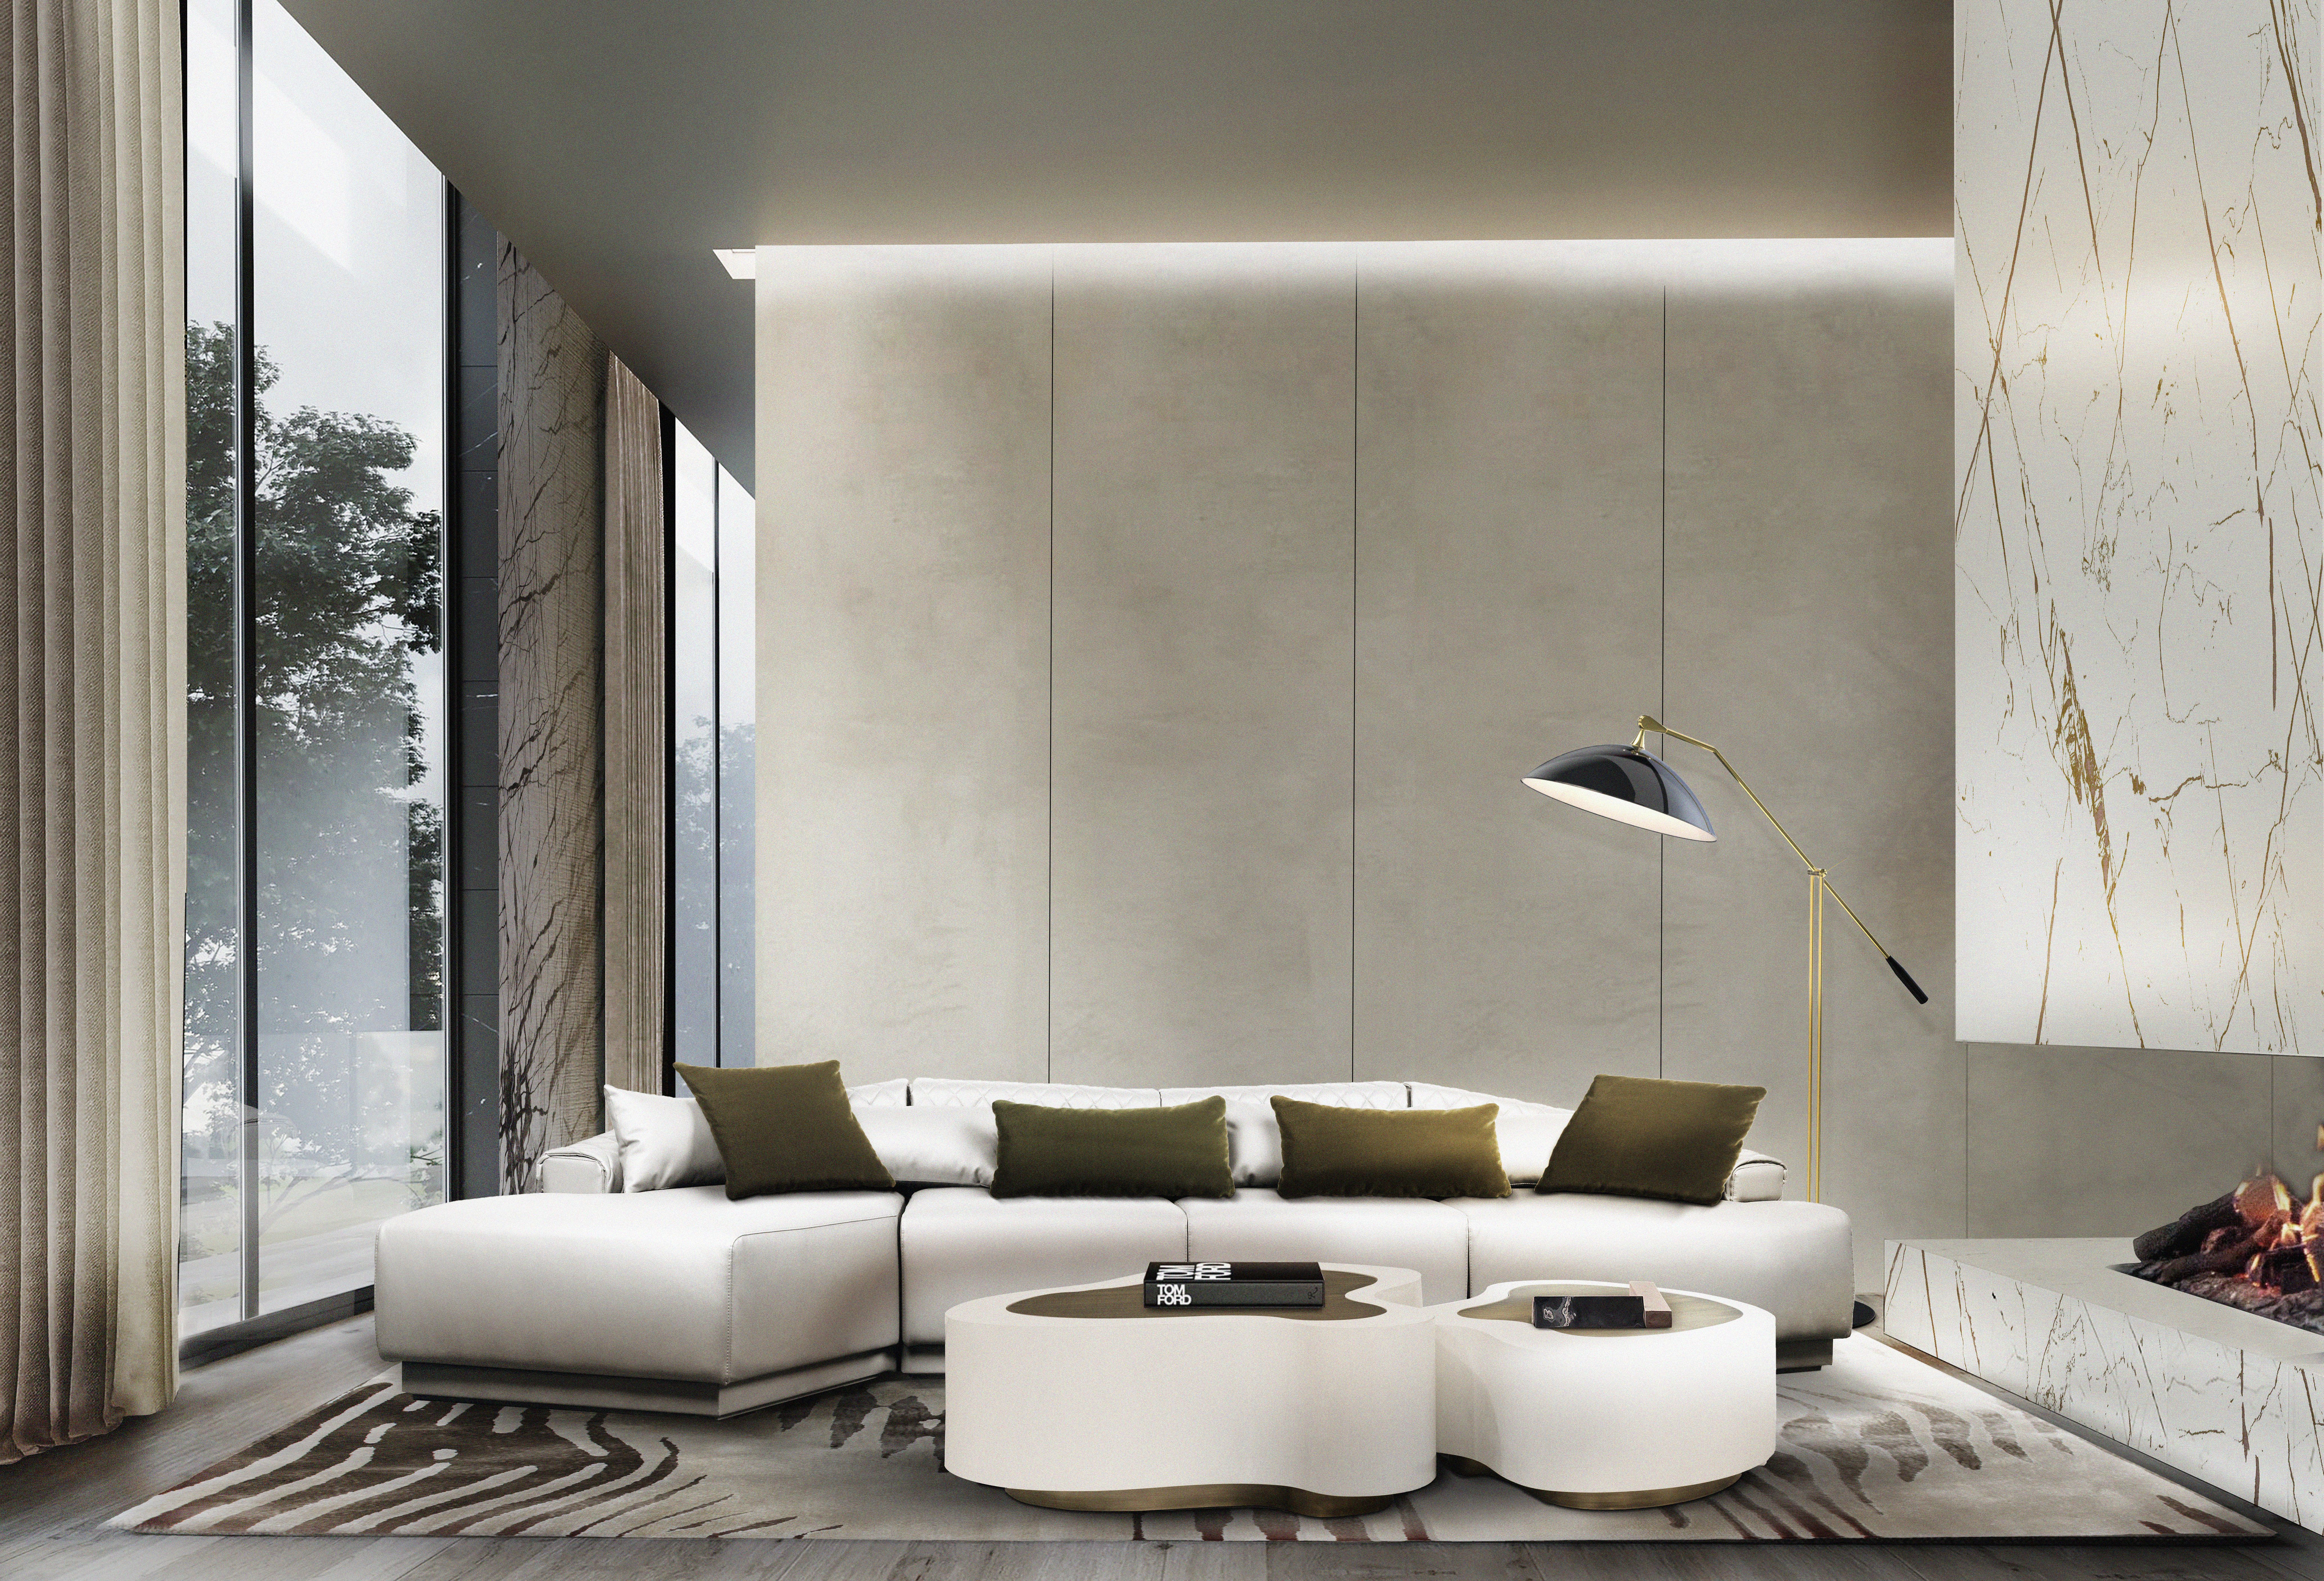 Modern Living Room With Kotta Botanical Rug by Rug'Society